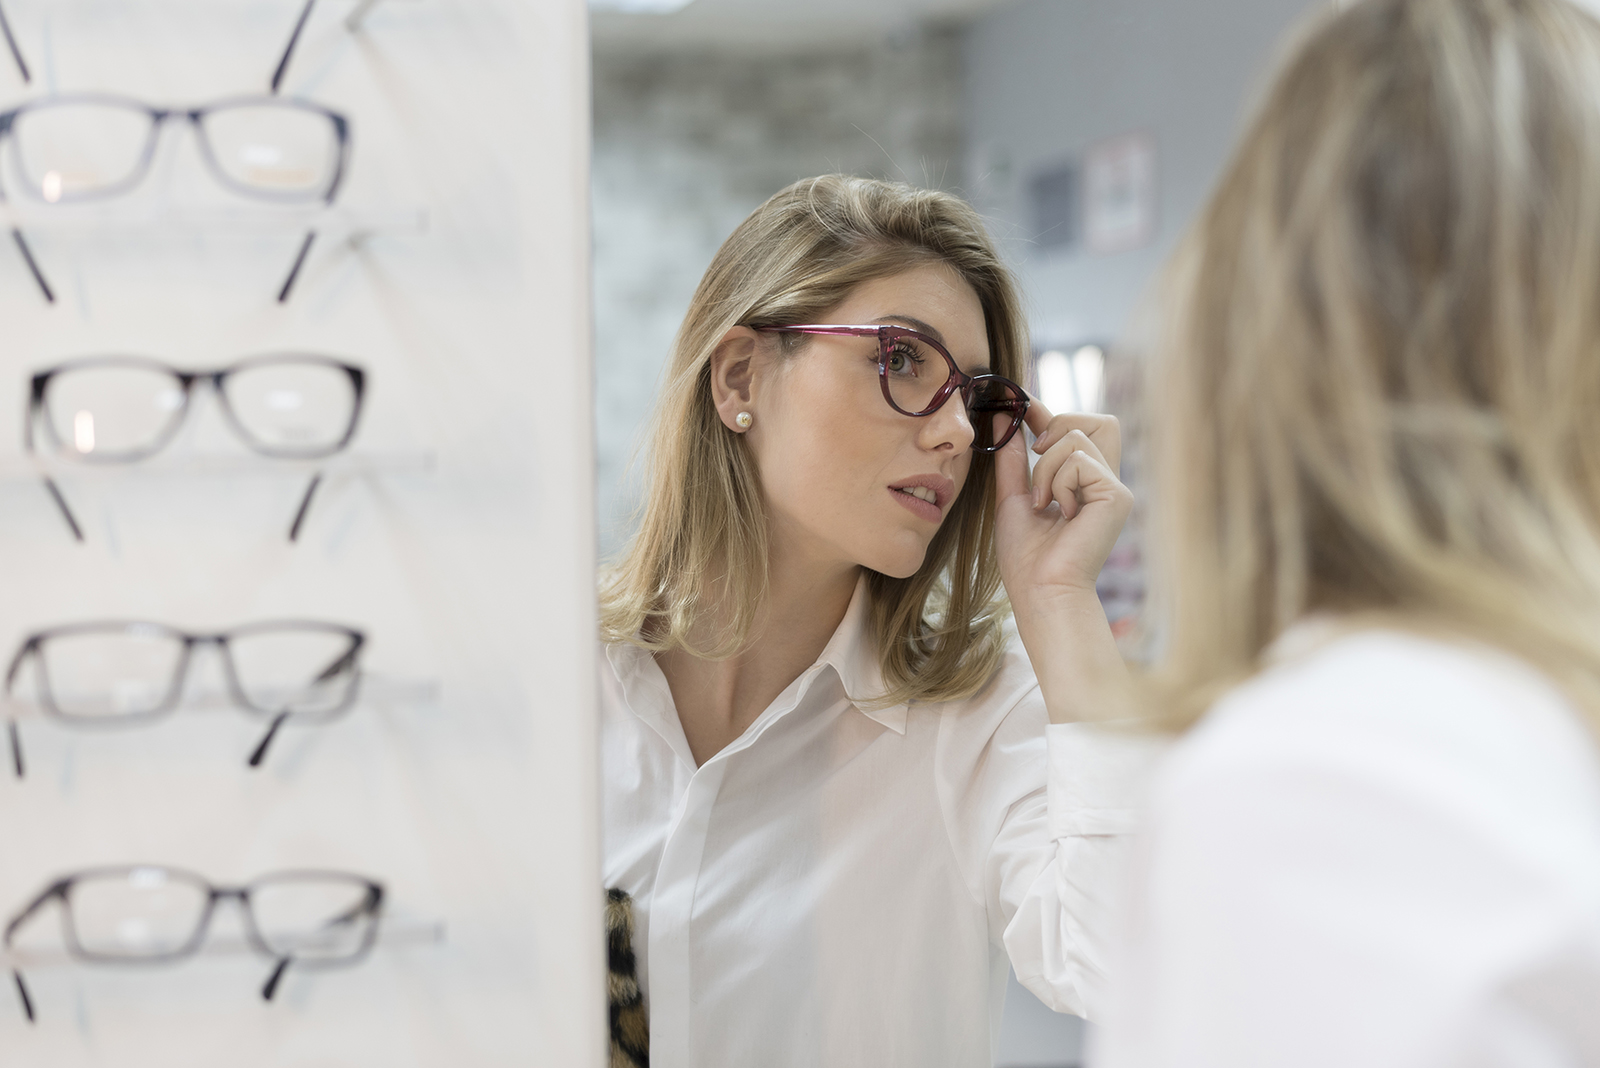 DESIGNER GLASSES - Our team of experts will help select the perfect eye glasses best suited for your face and lifestyle from our large selection of designer glasses! Call 630.855.5542 to schedule a FREE consultation TODAY.